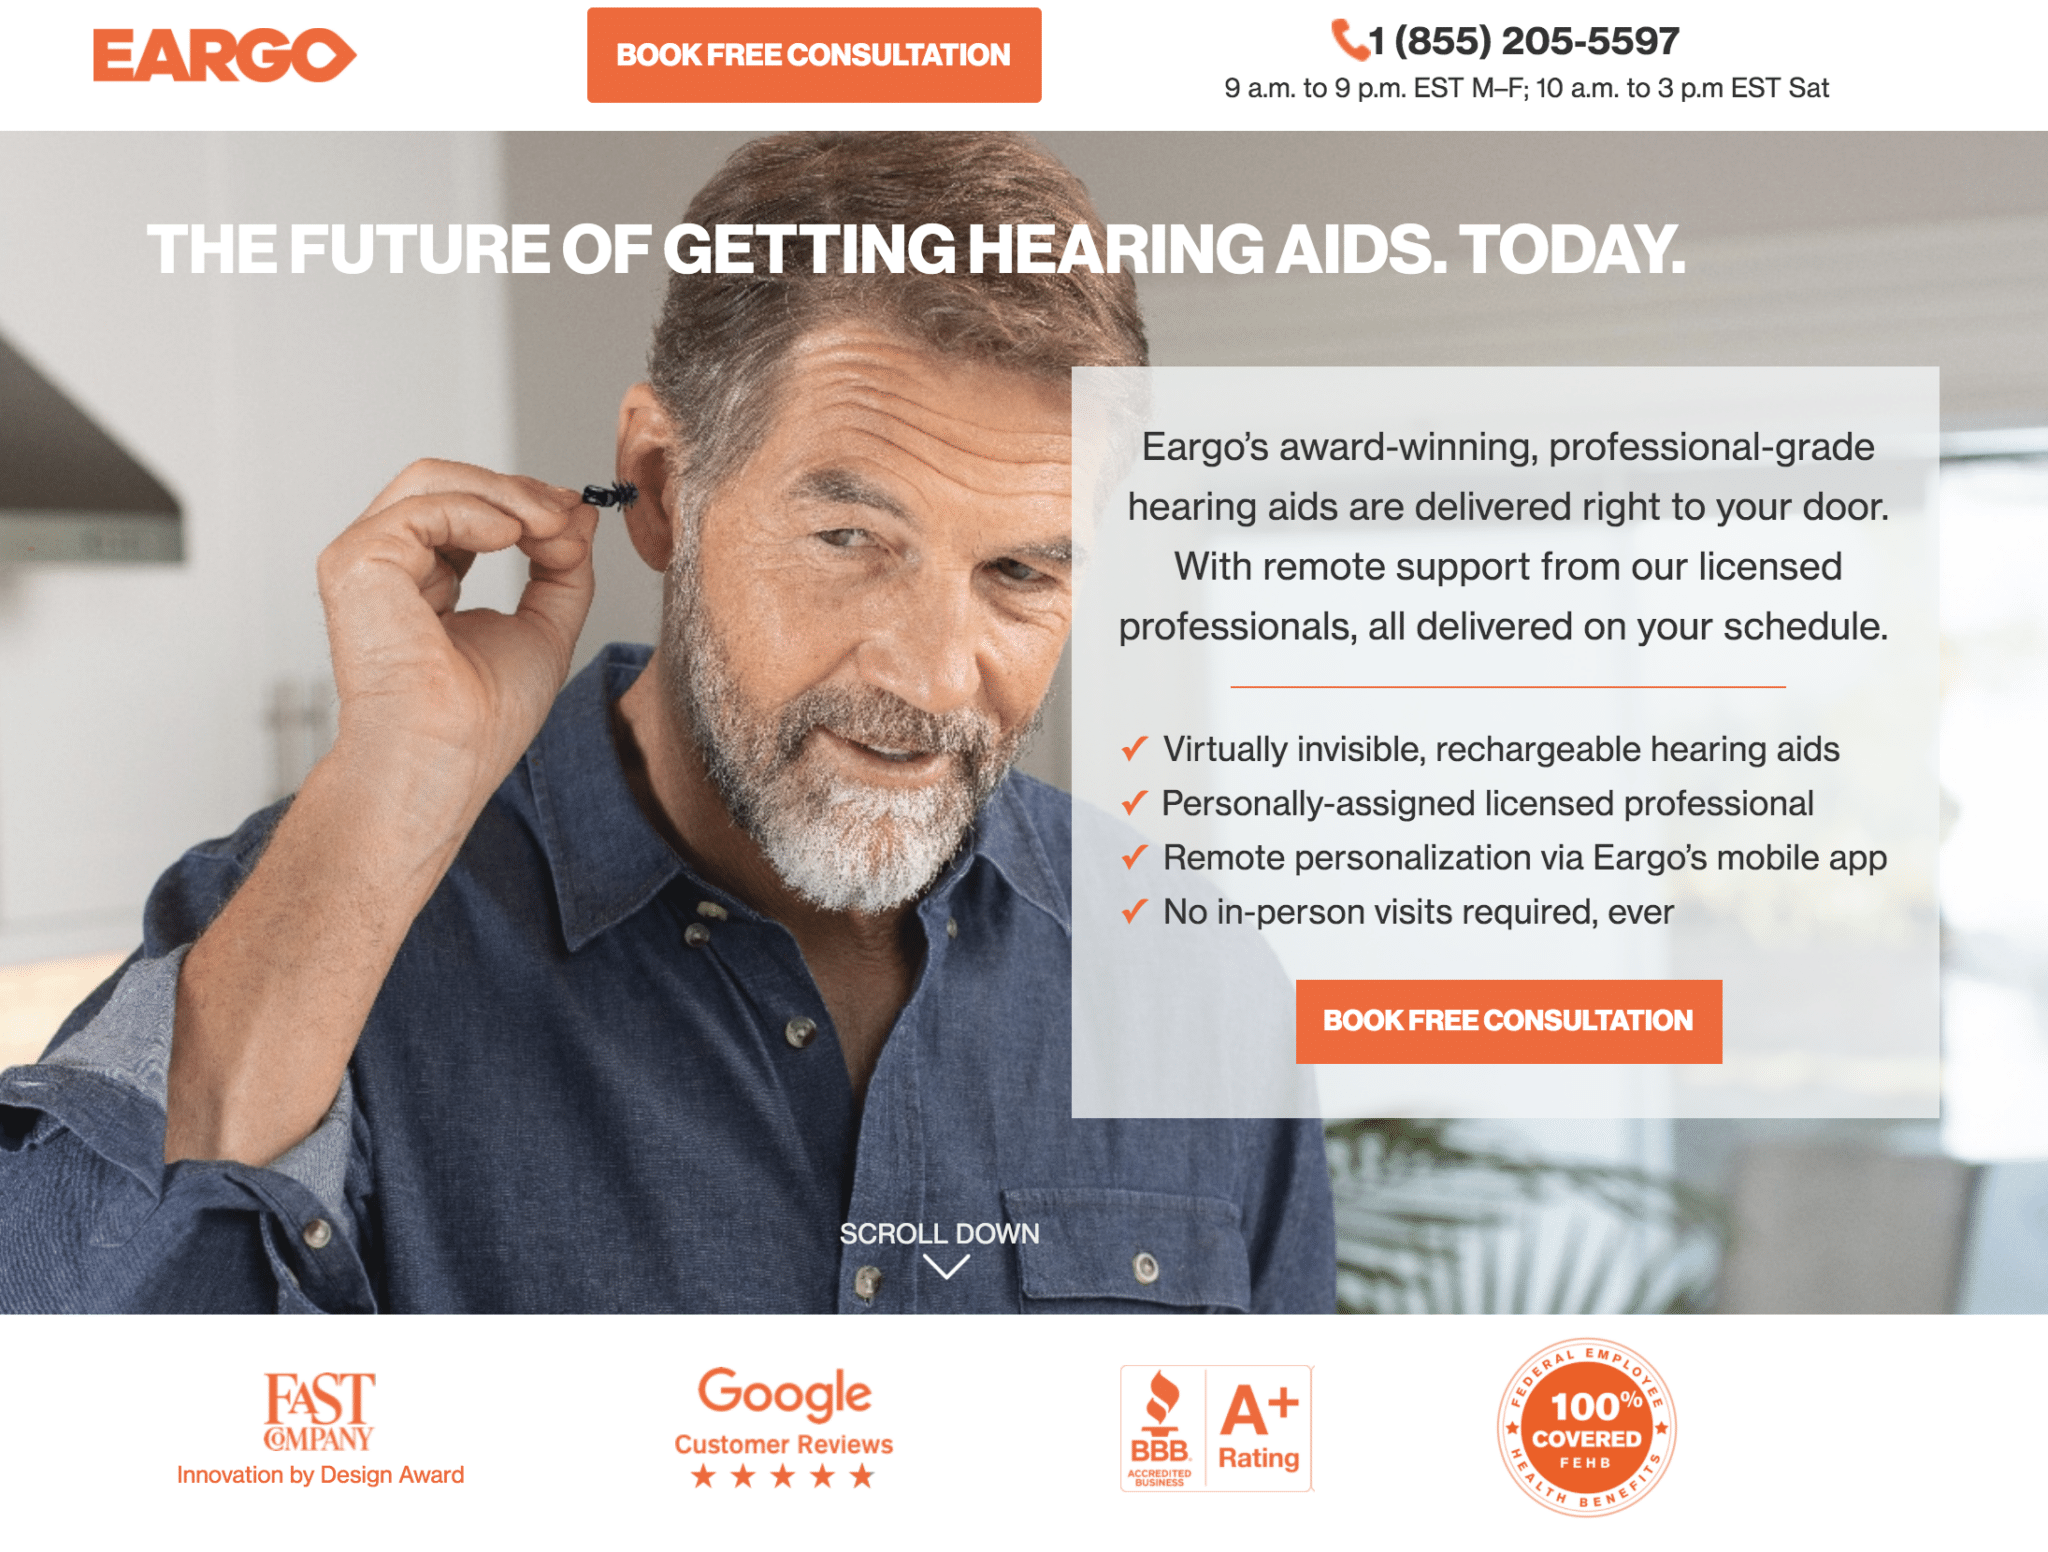 Eargo landing page